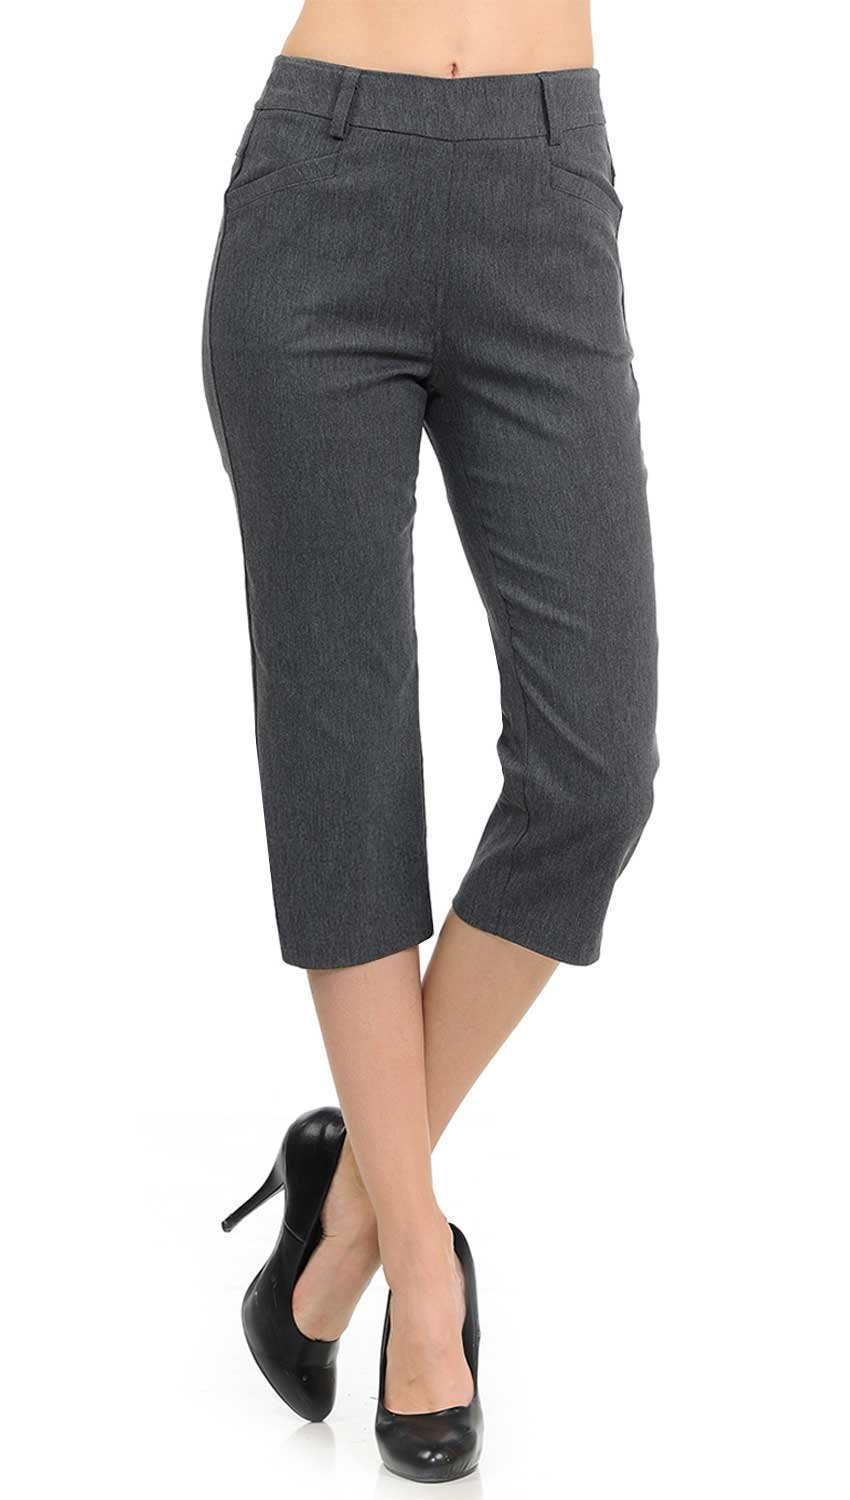 VIV Collection New Women's Straight Fit Trouser Capri Pants (X-Large, Heather Charcoal)